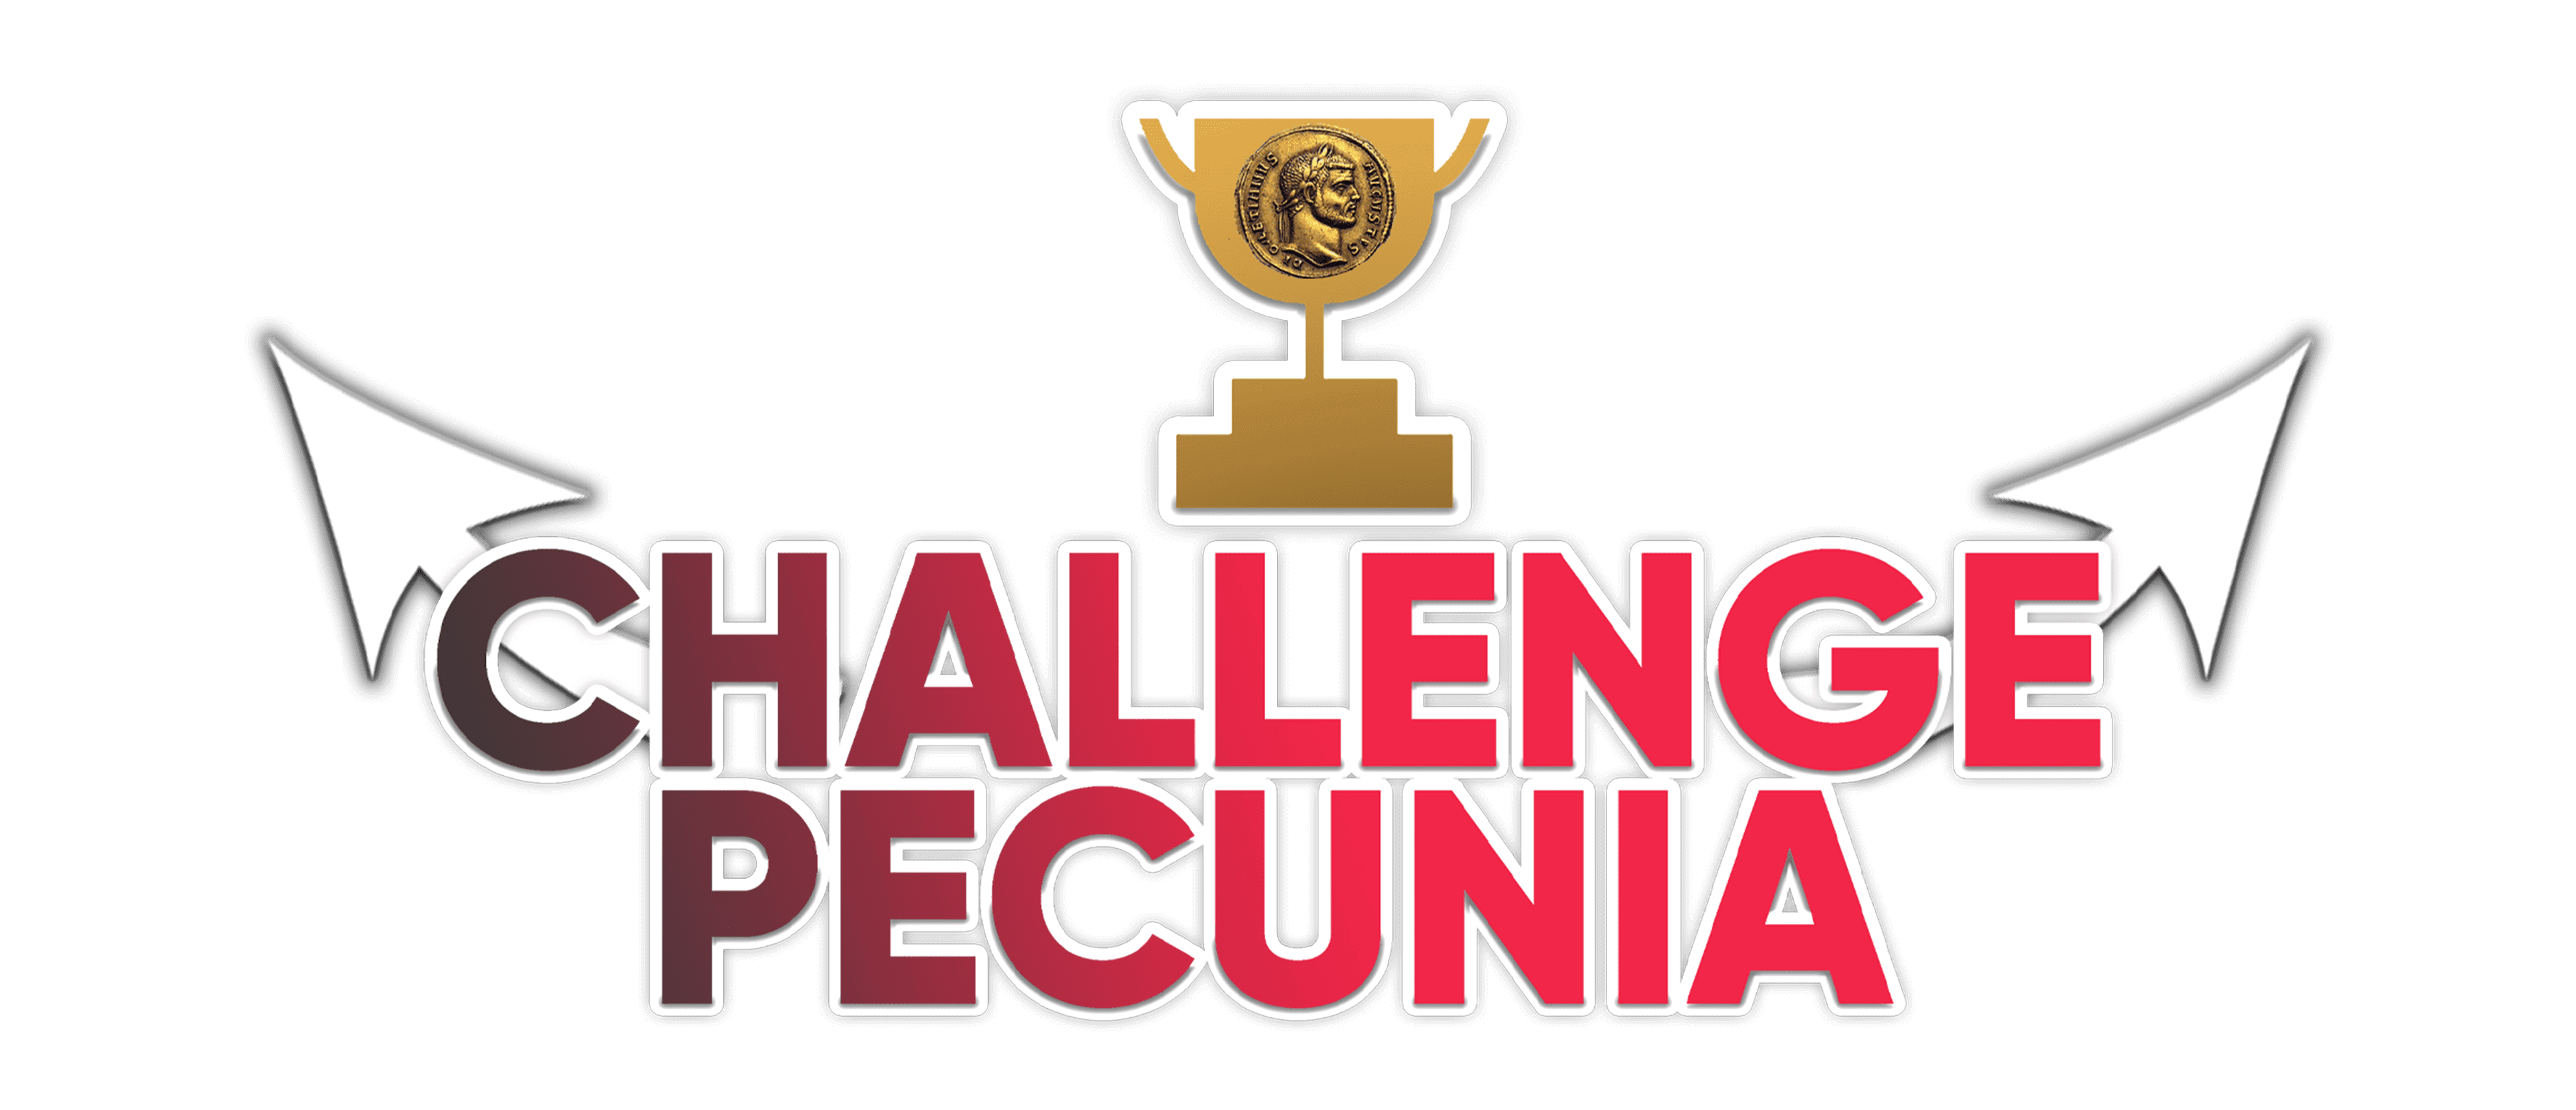 Challenge Pecunia par Ecom French Touch